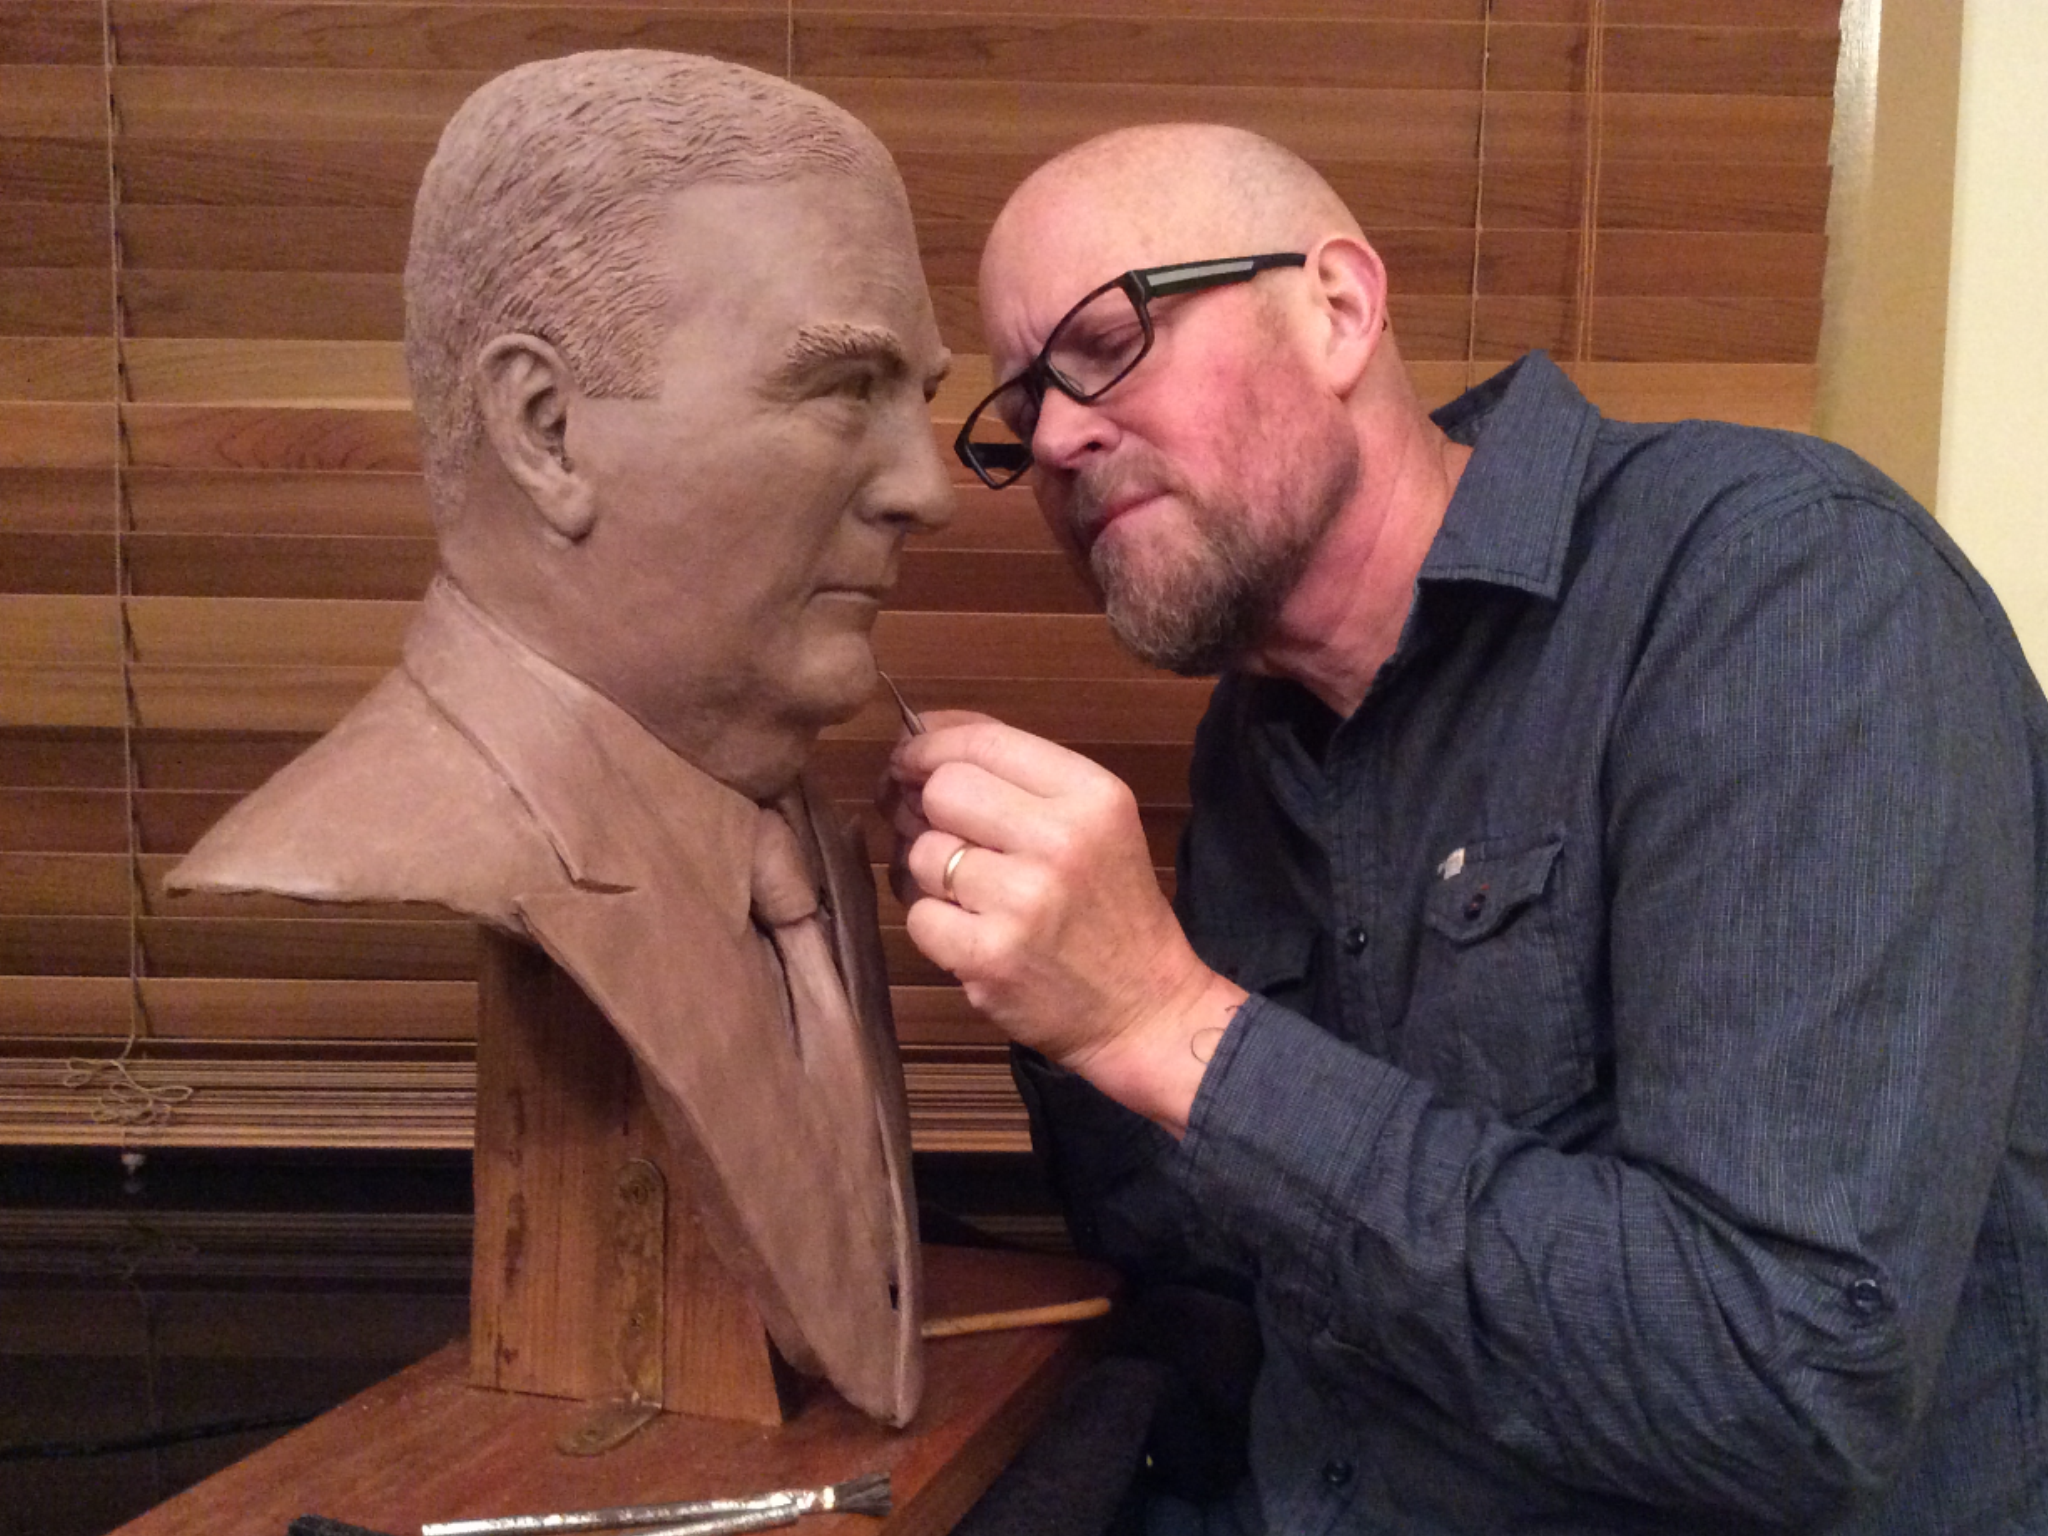 RICHARD WORKING ON CLAY BUST